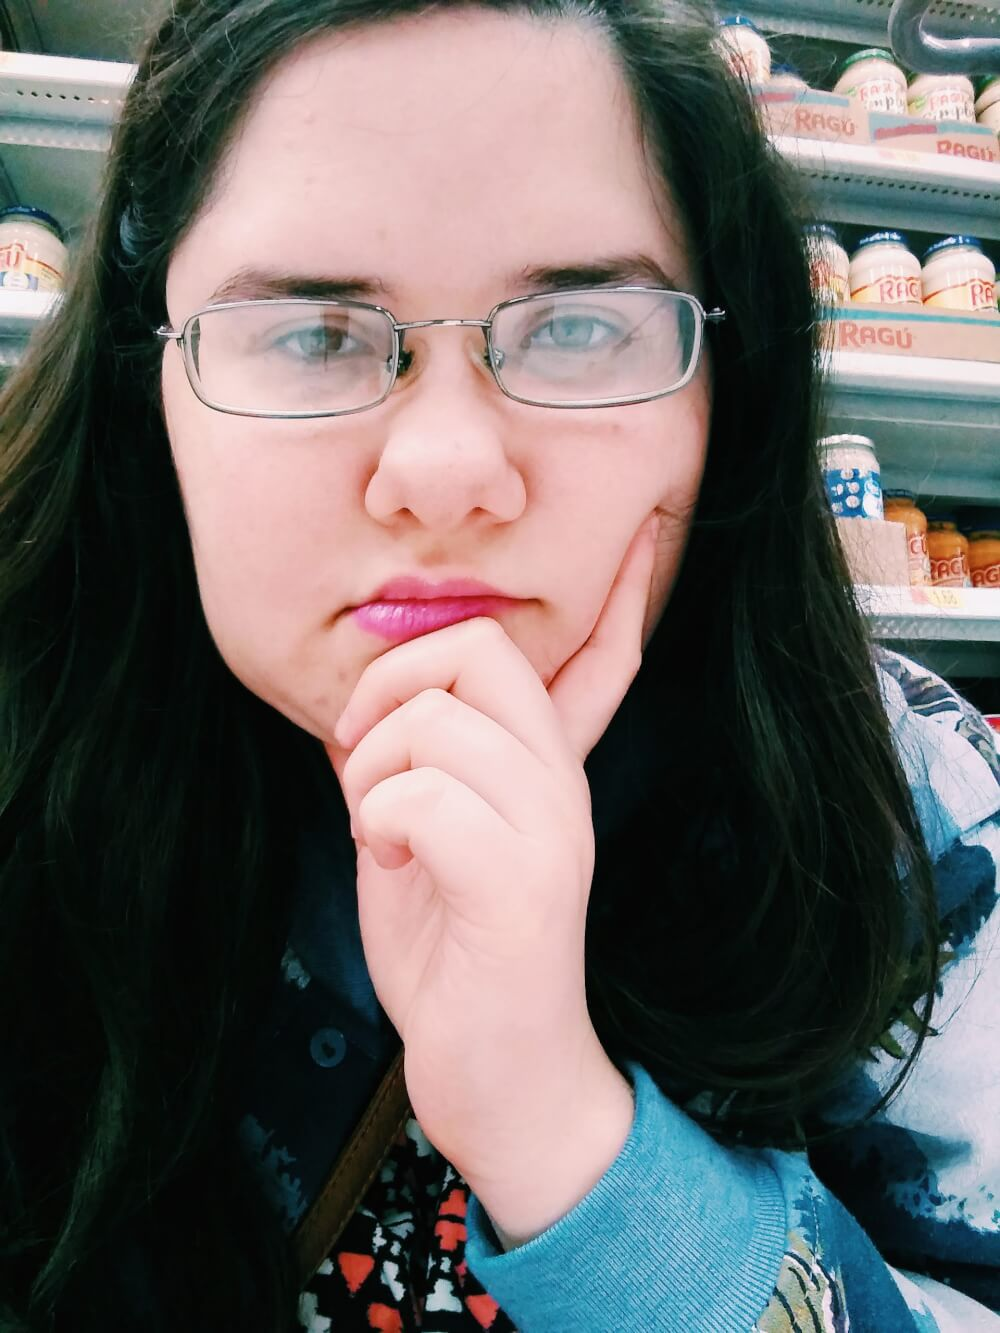 Nonchalant selfie while sitting in Walmart aisle on Black Friday